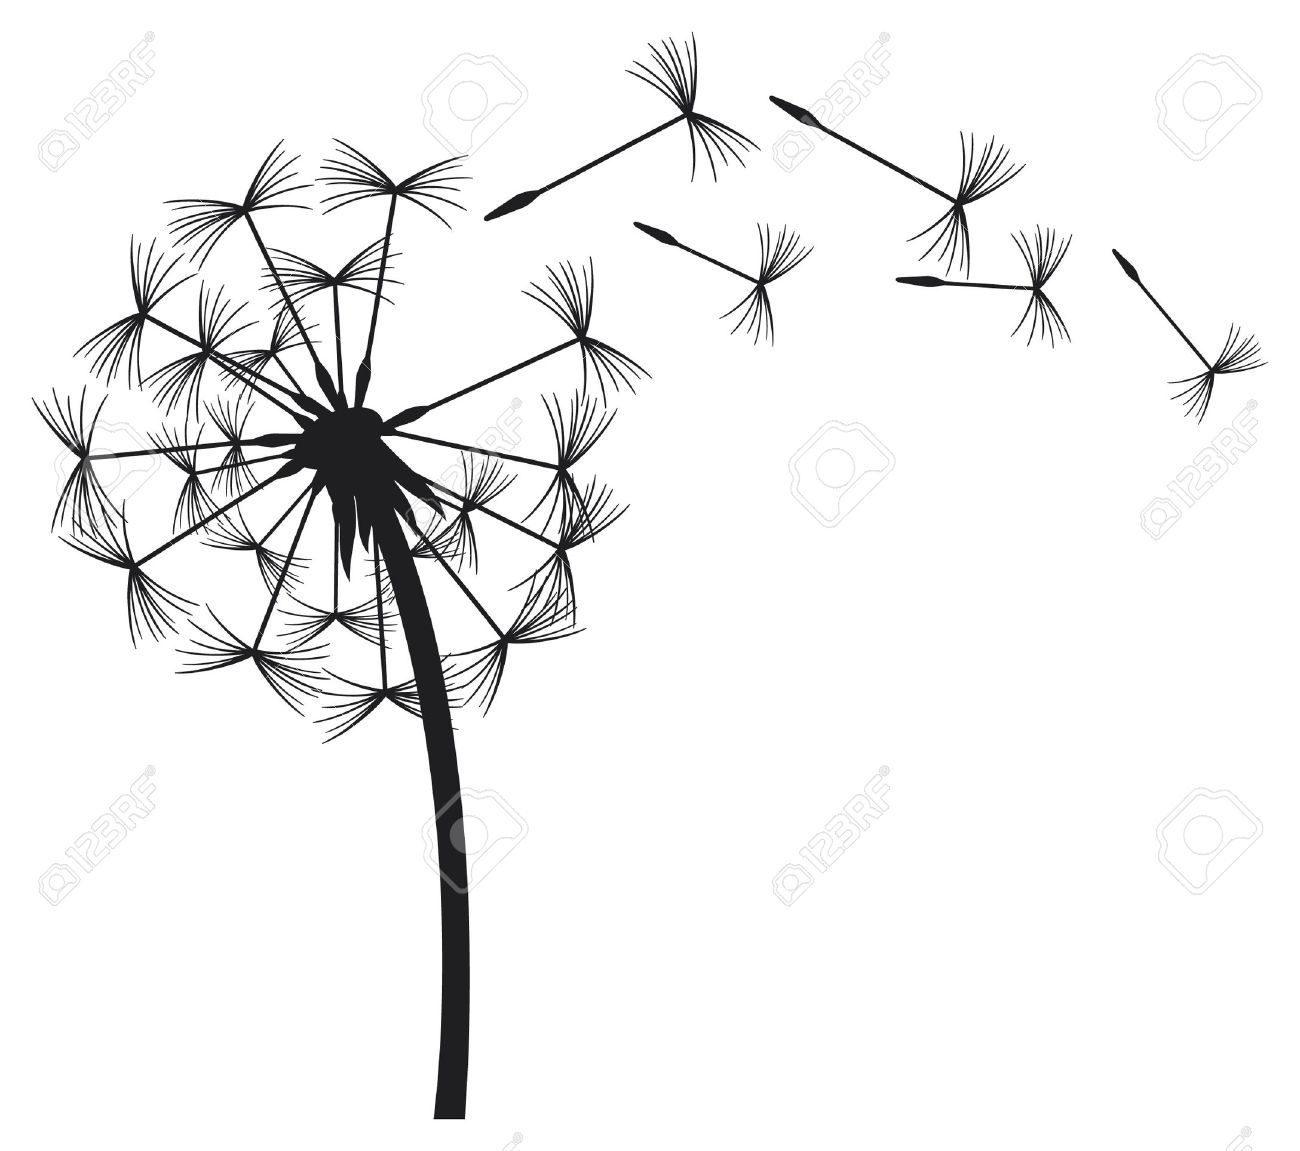 Blowing Dandelion Stock Vector Illustration And Royalty Free.